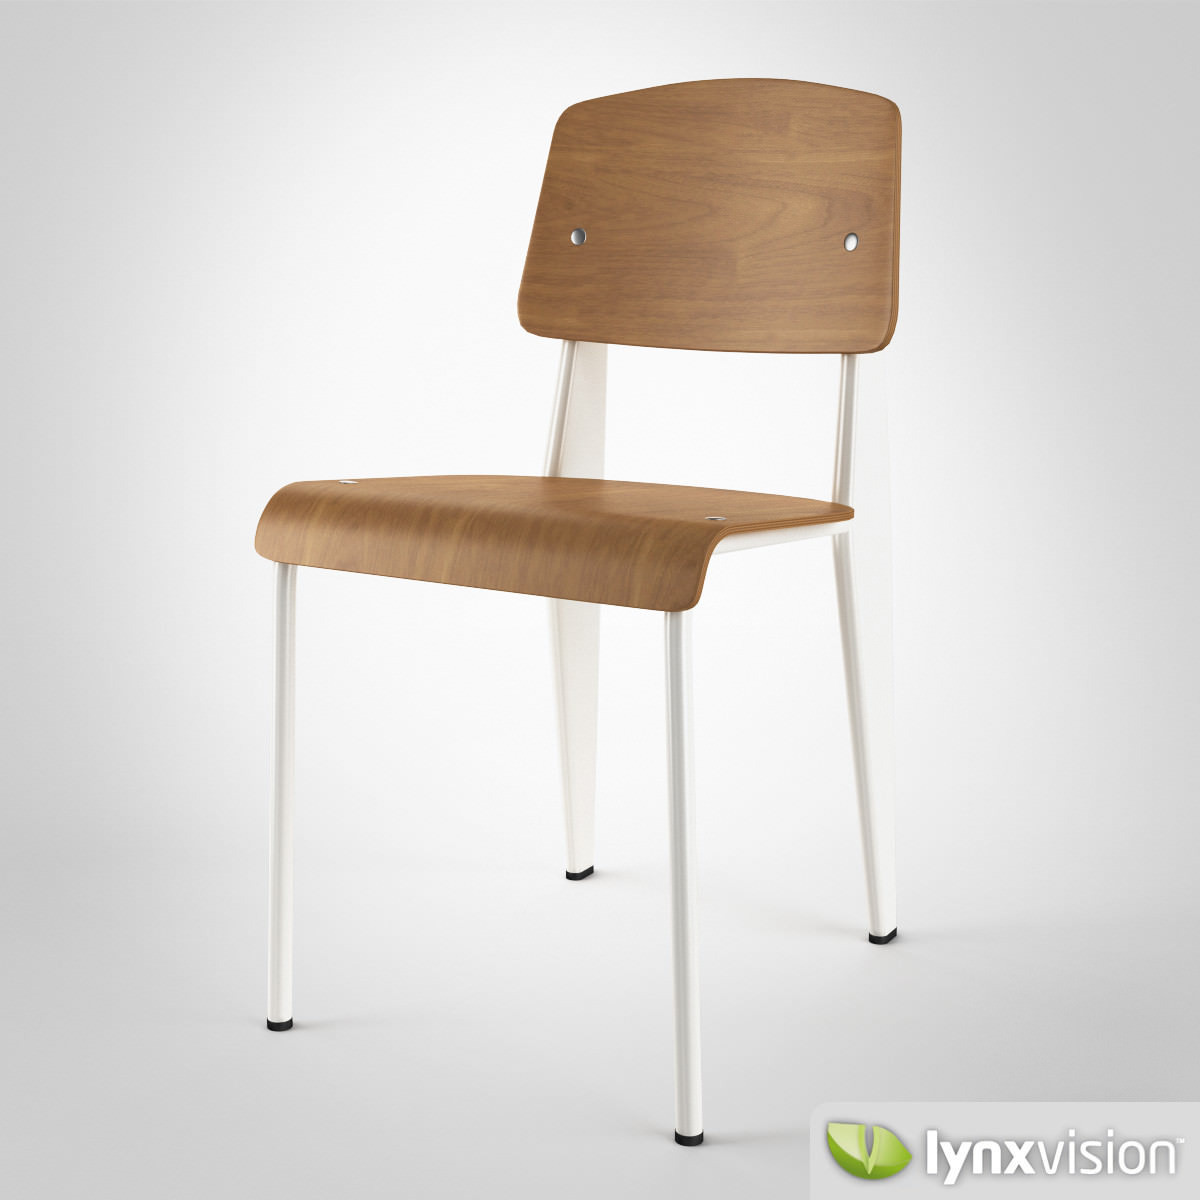 ... Standard Chair By Vitra 3d Model Max Obj Fbx Mtl 4 ...